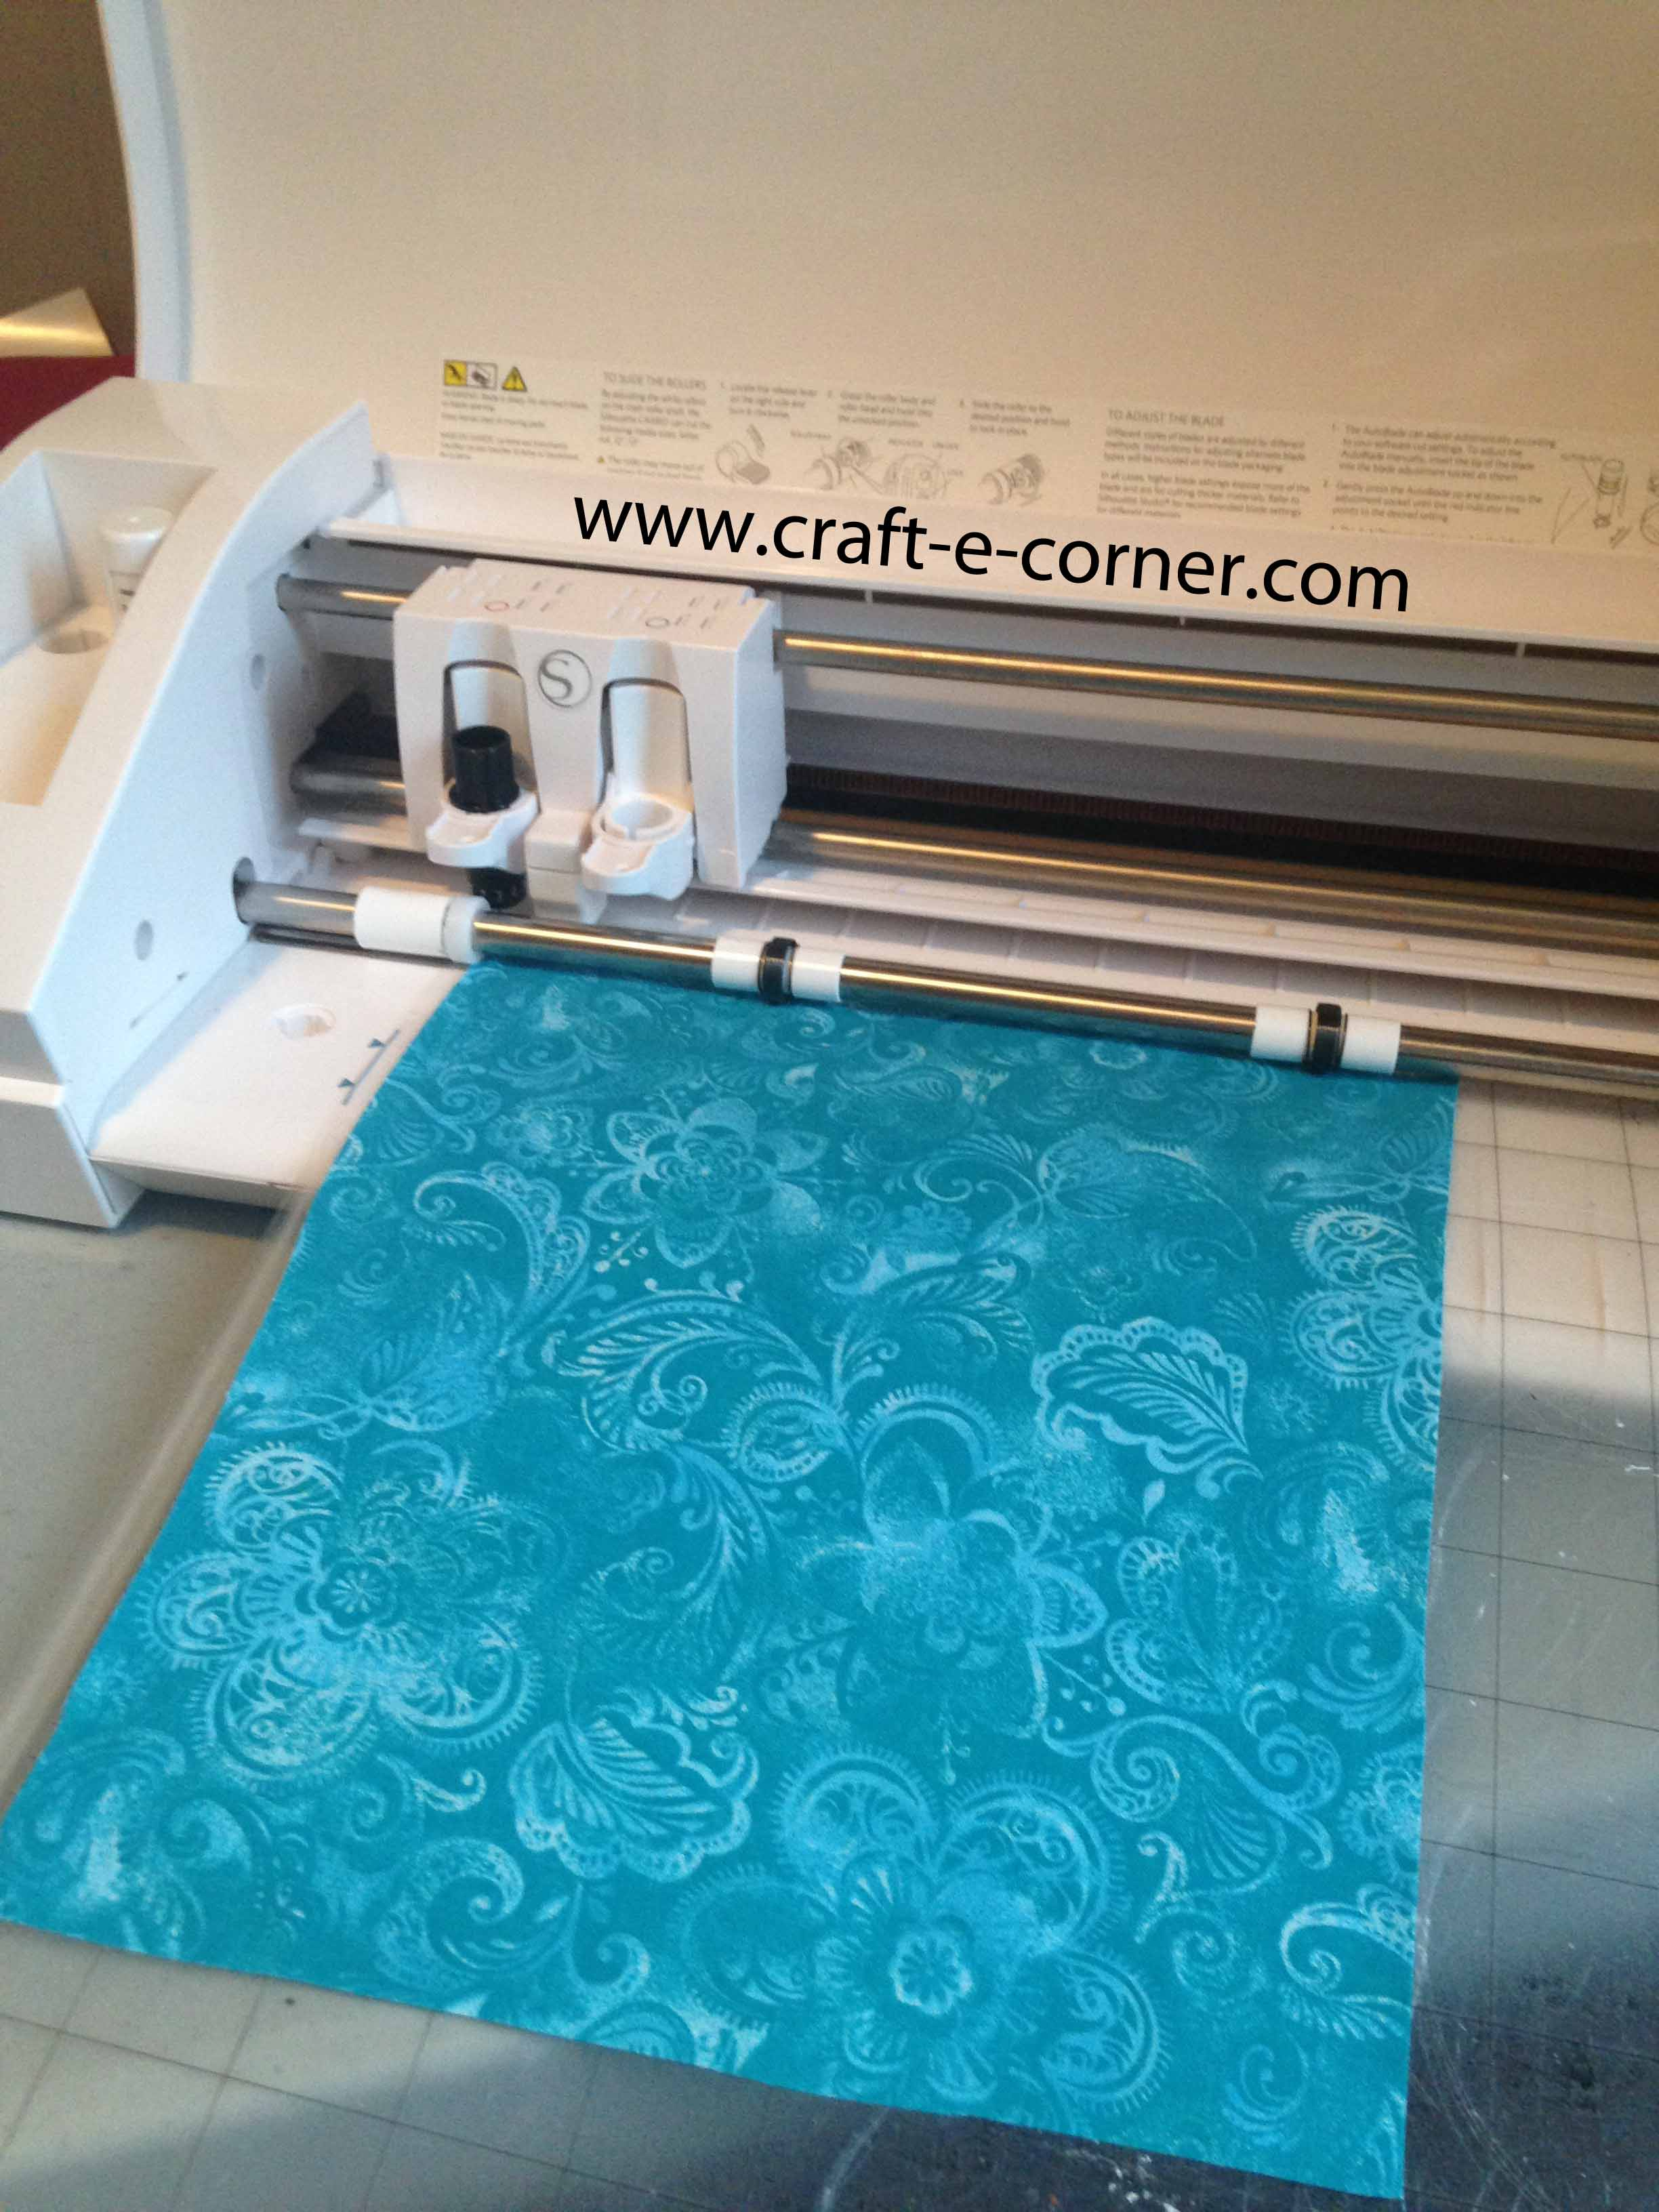 How to cut fabric with the Silhouette Cameo- stabilize fabric and then put on cutting mat, fabric side up.